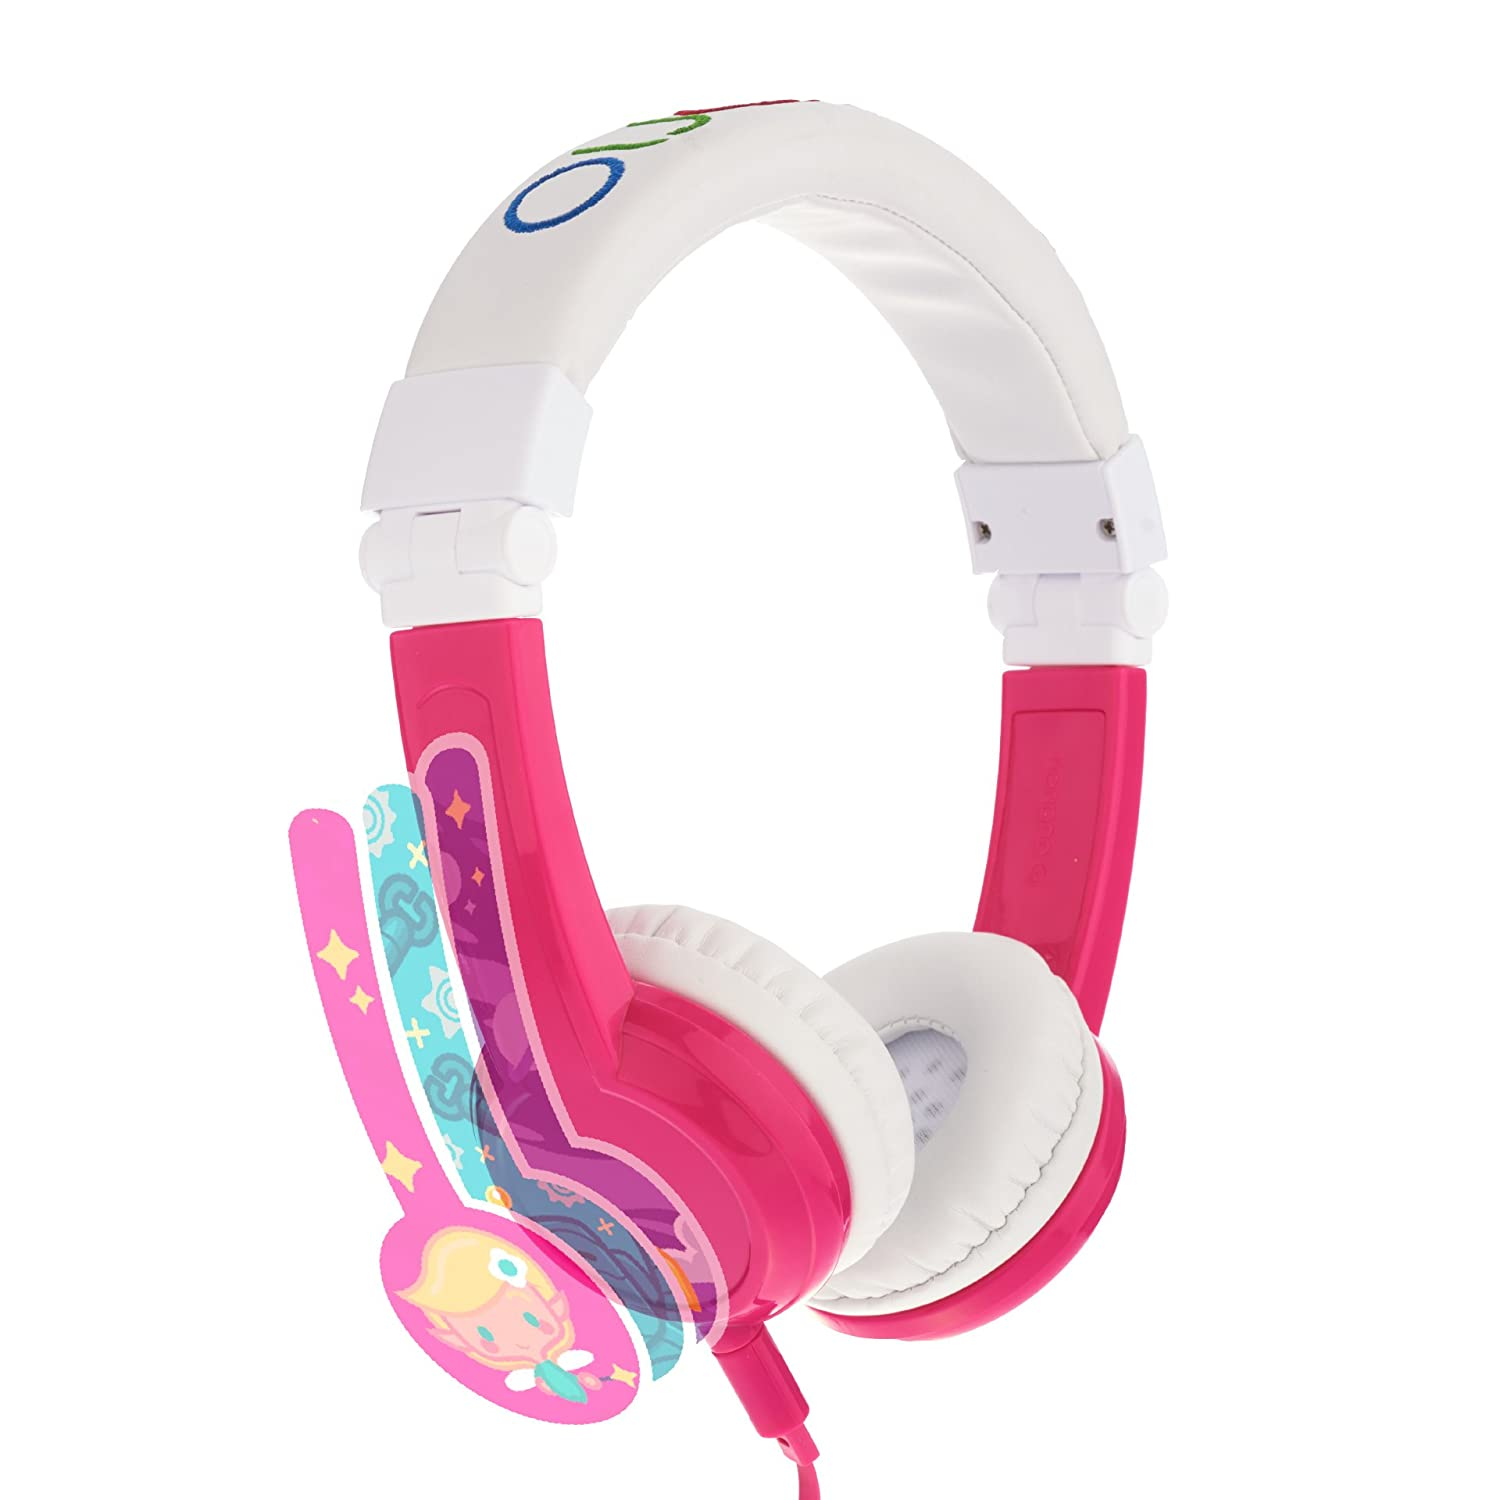 Explore Foldable Volume Limiting Kids Headphones - Durable, Comfortable & Customizable - Built in Headphone Splitter and In Line Mic - For iPad, Kindle, Computers and Tablets - Pink ONANDOFF BP-EX-FD-PINK-01-K